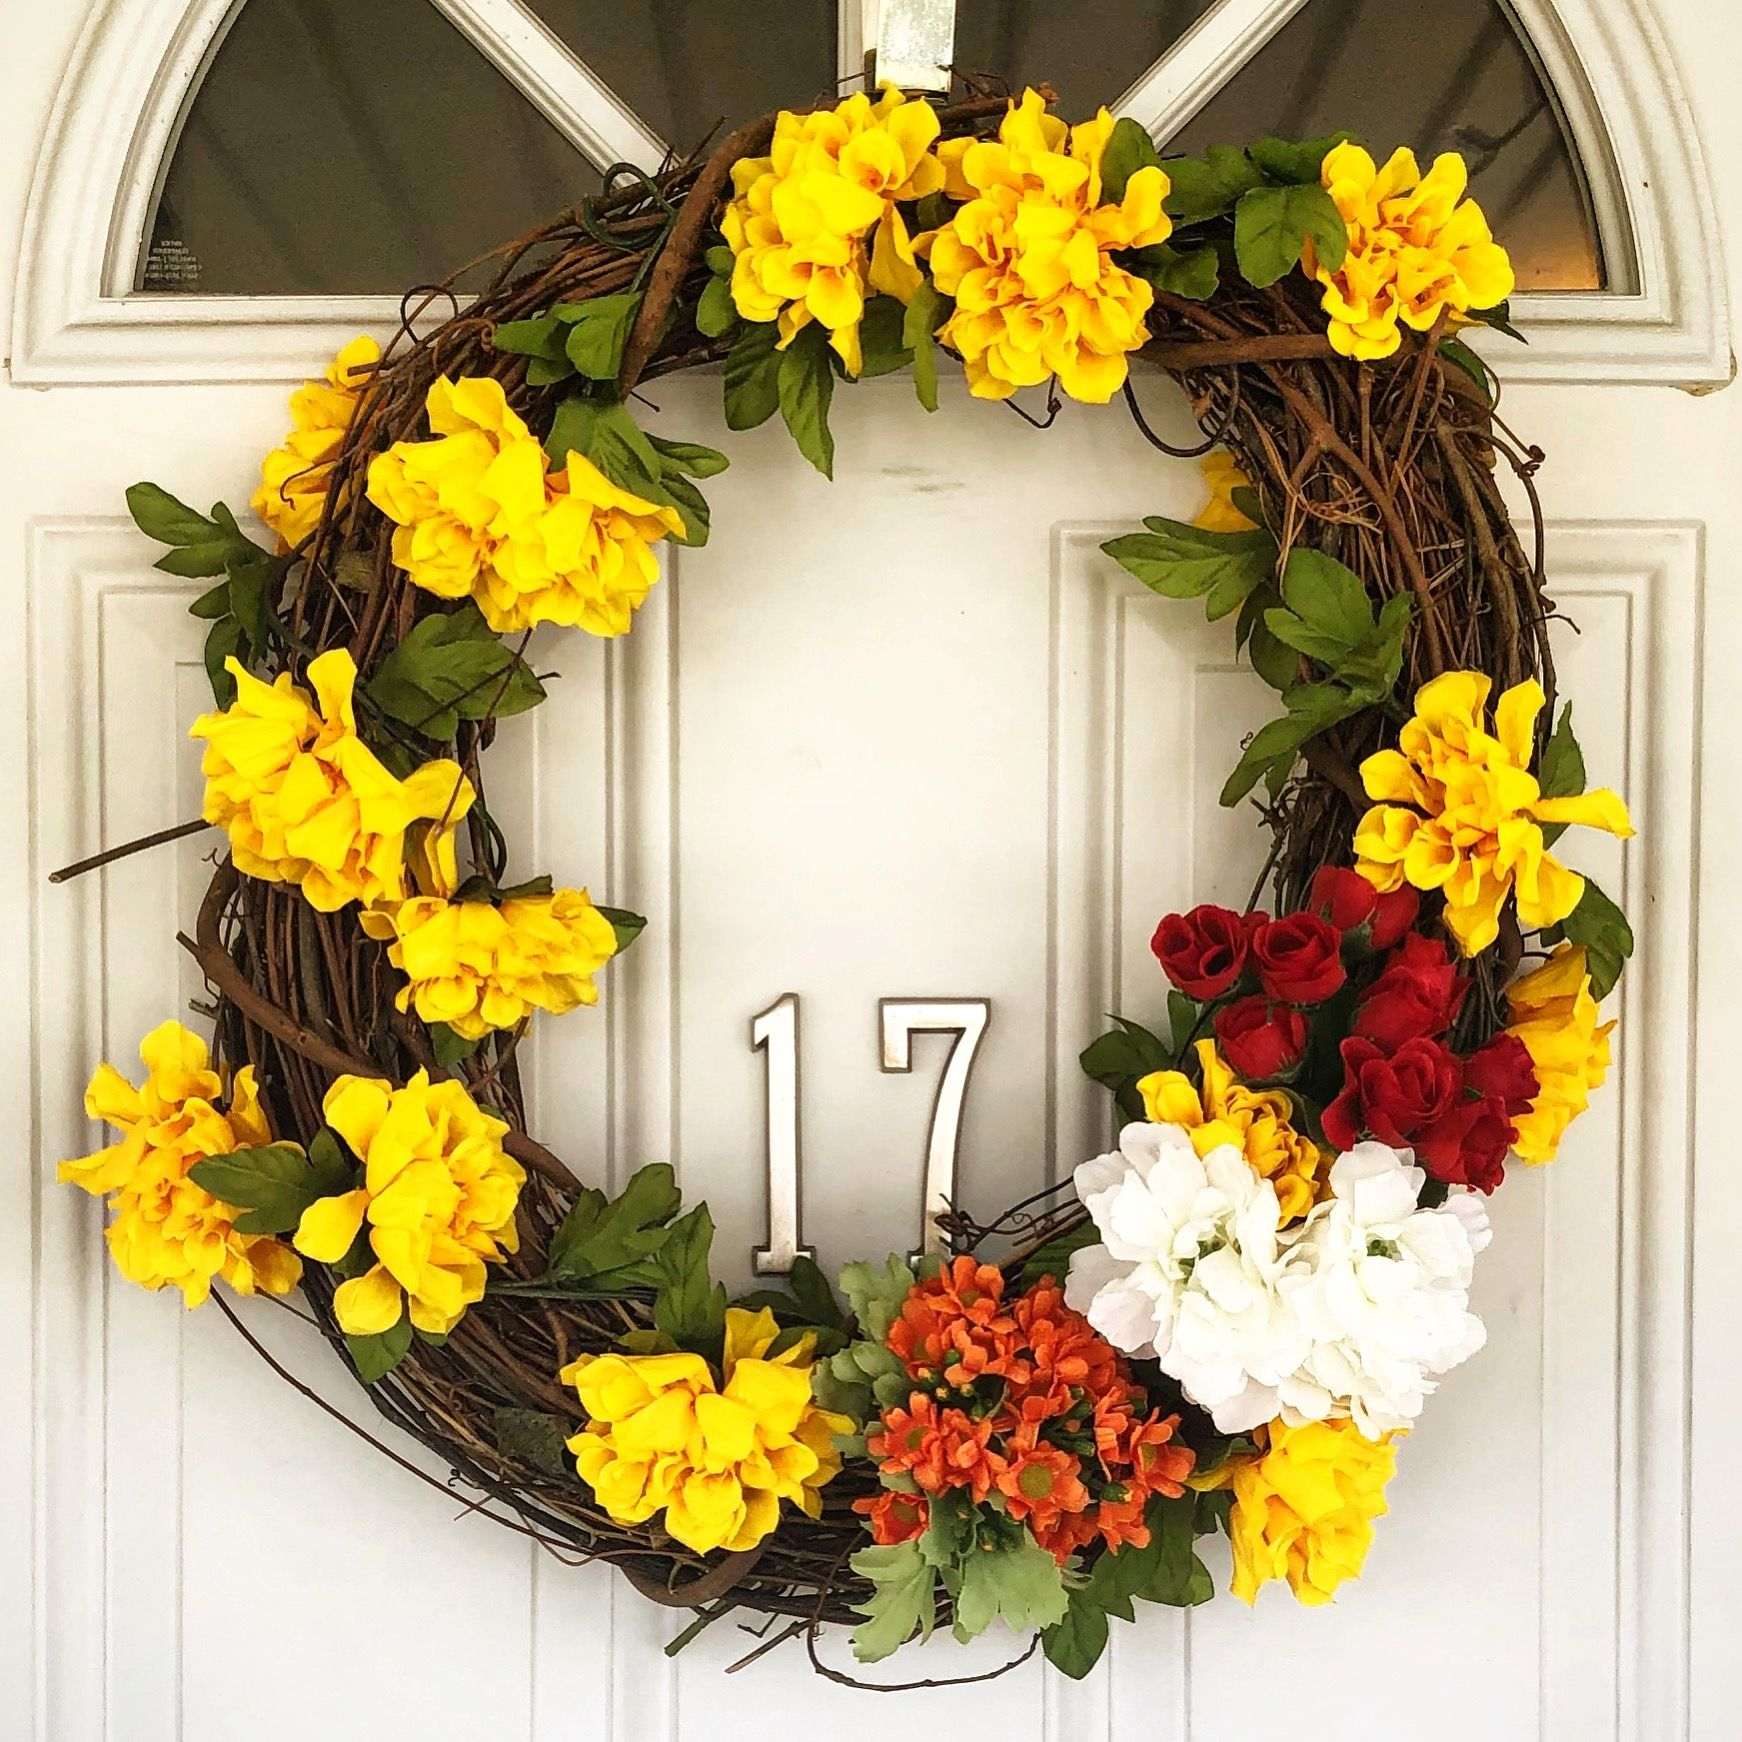 #Diy #Spring #Floral #Wreath For Your Front Door #Simple #